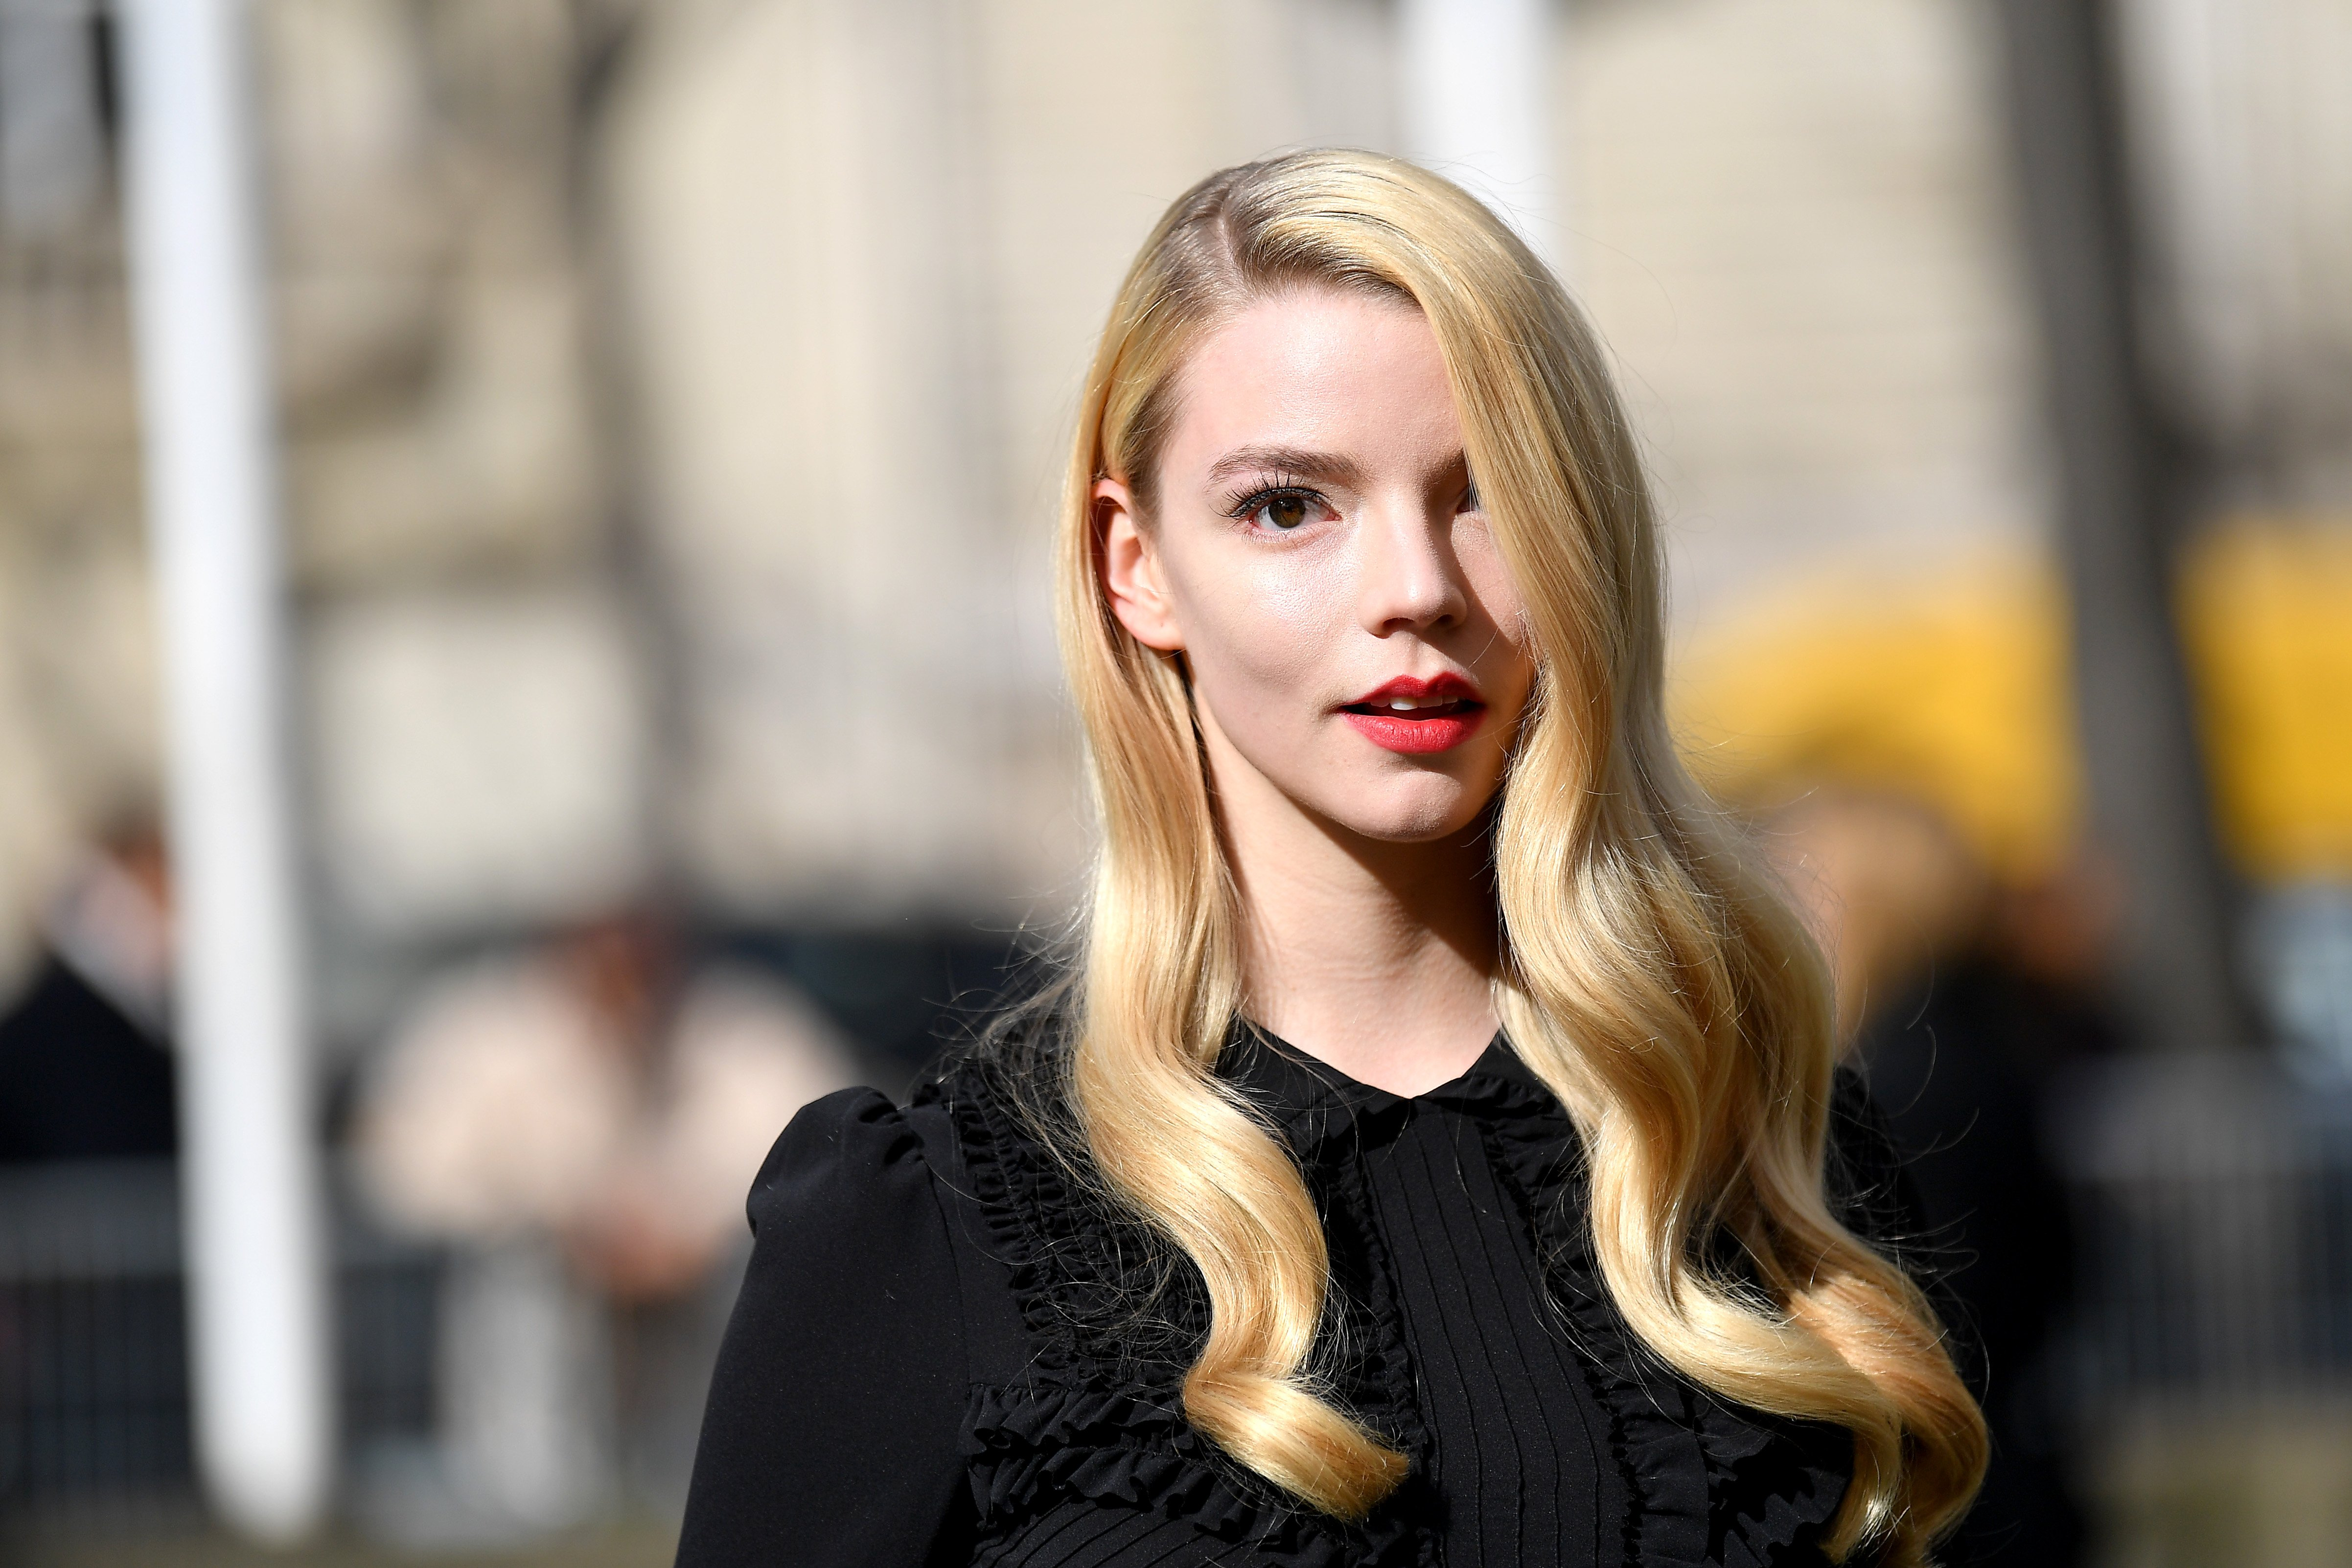 Anya Taylor-Joy pictured at the Miu Miu show during the Paris Fashion Week Womenswear Fall/Winter 2020/2021, Paris, France. | Photo: Getty Images